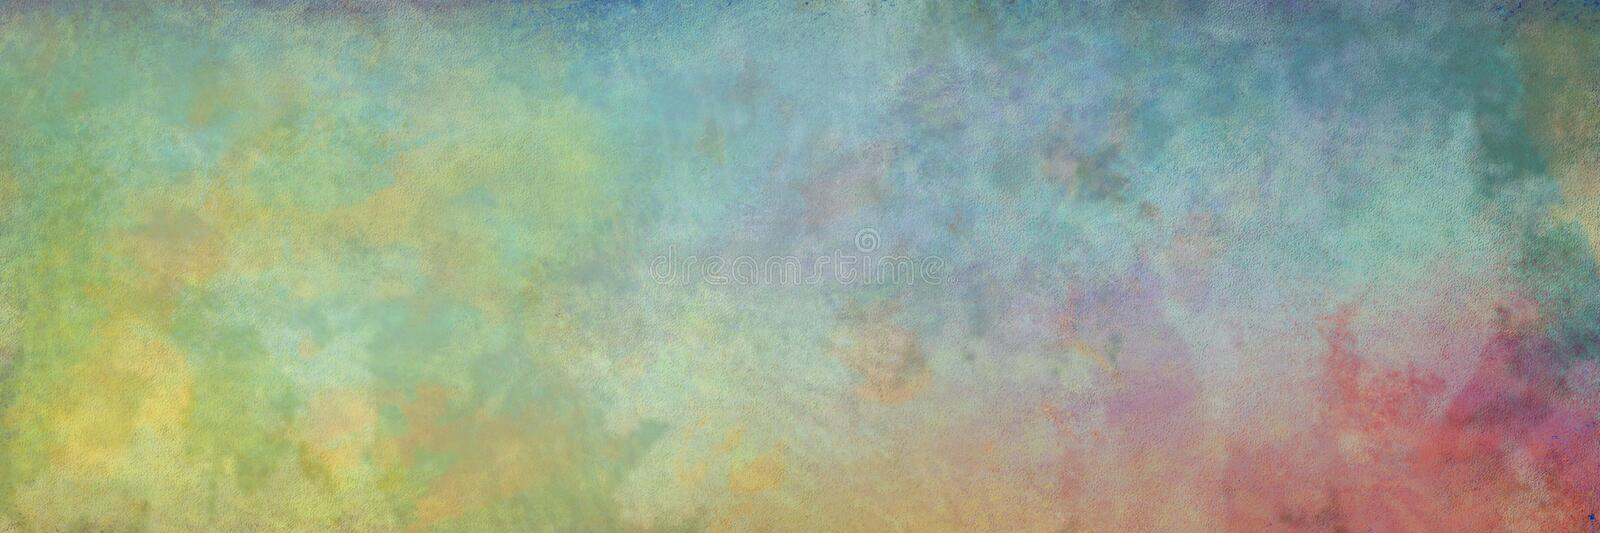 Abstract background with painted stains and old vintage texture in light blue green pink and yellow colors in smeared paint design royalty free illustration